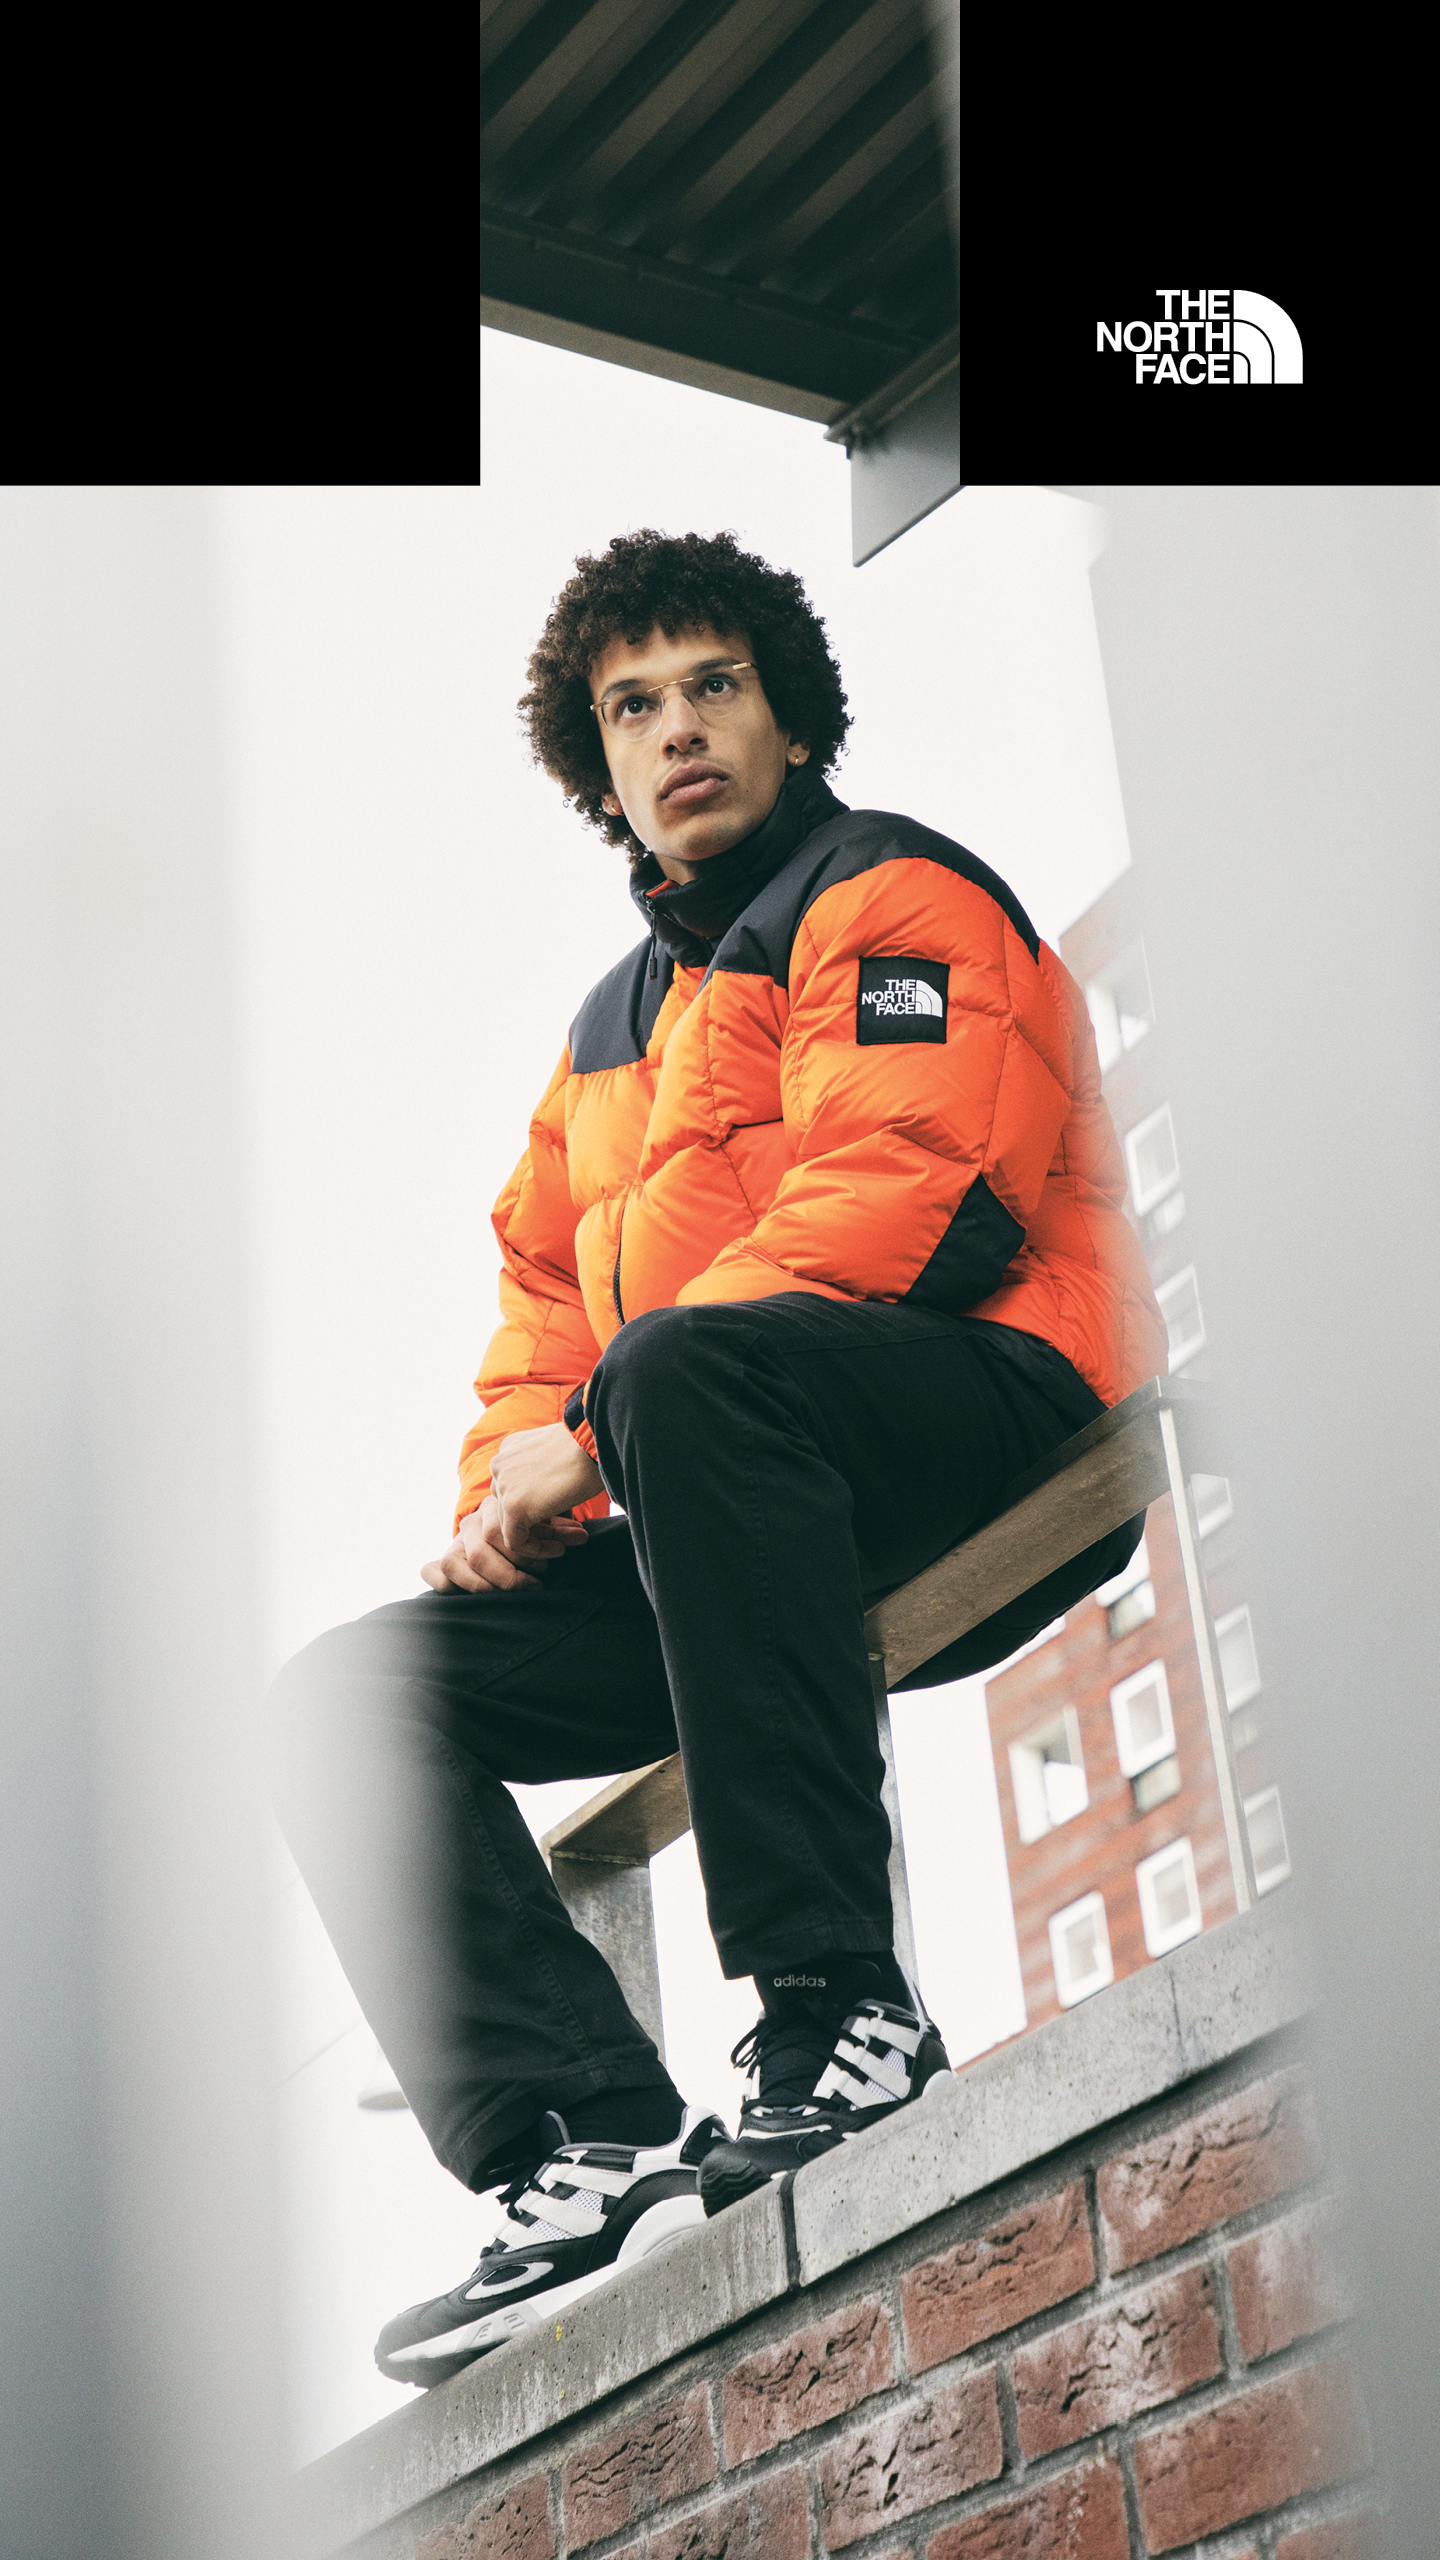 The North Face A/W '19 Drop 2